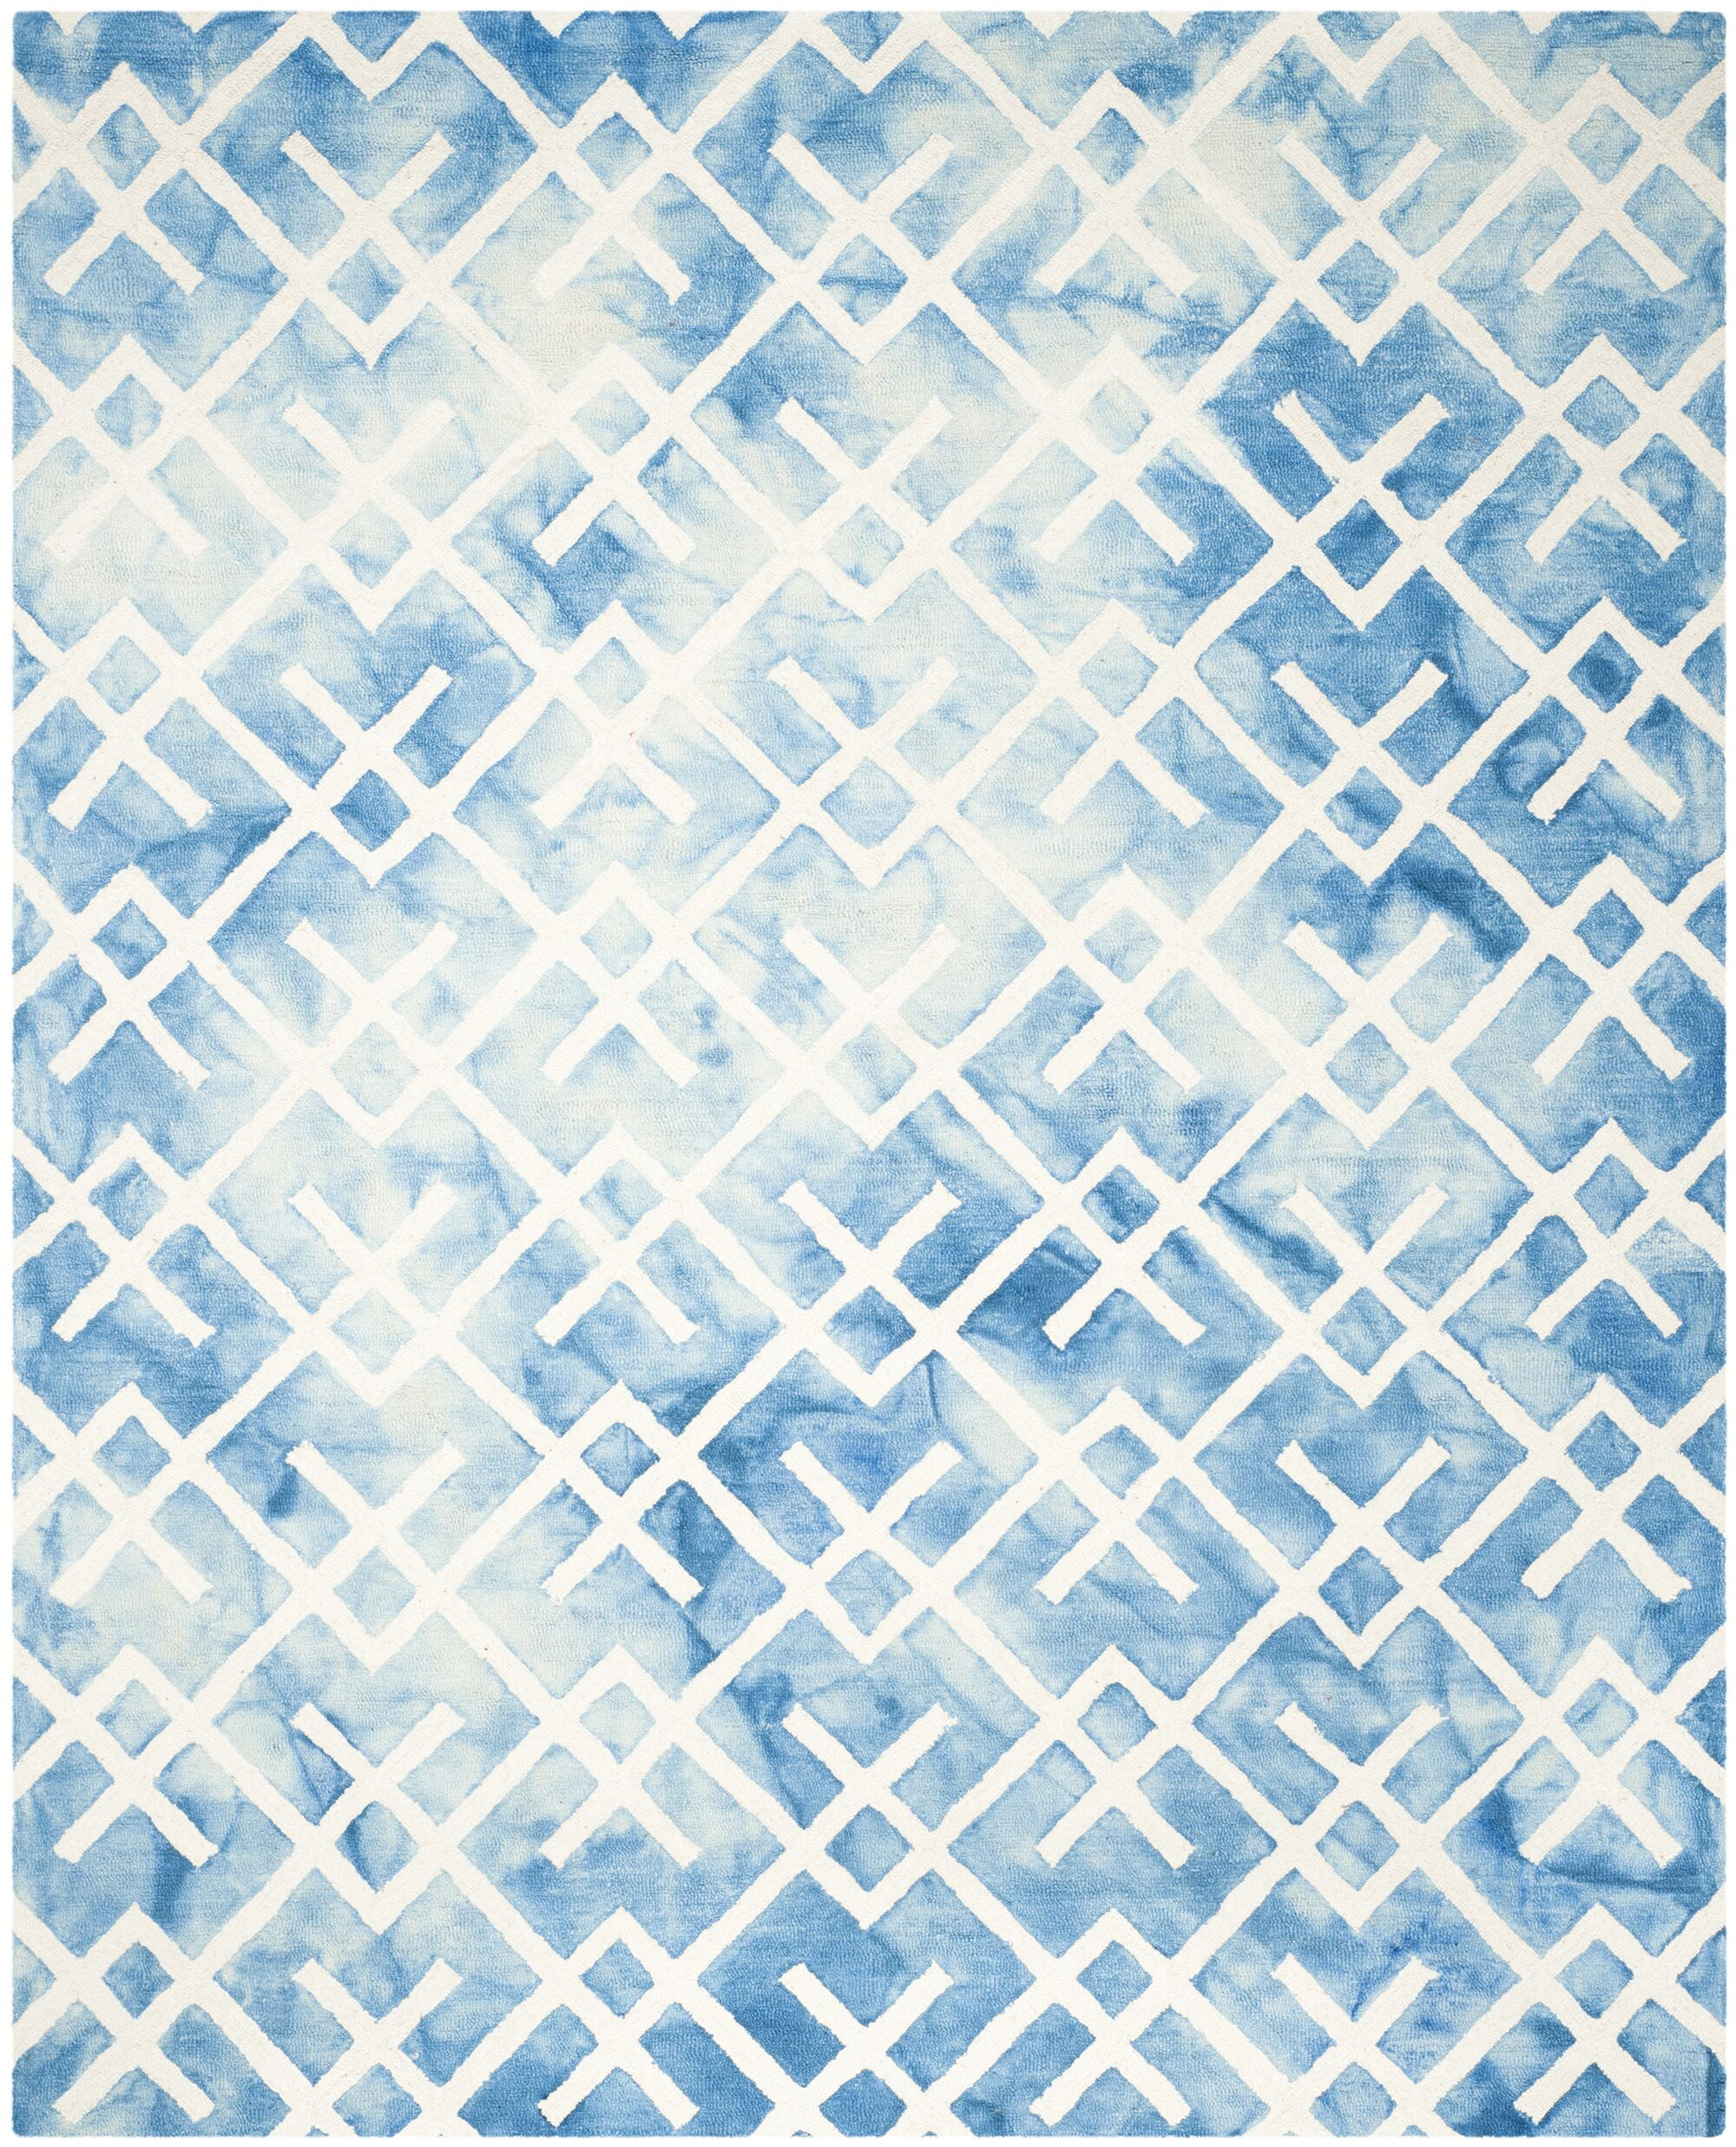 Castries Hand-Tufted Blue/Ivory Area Rug Rug Size: Rectangle 8' x 10'